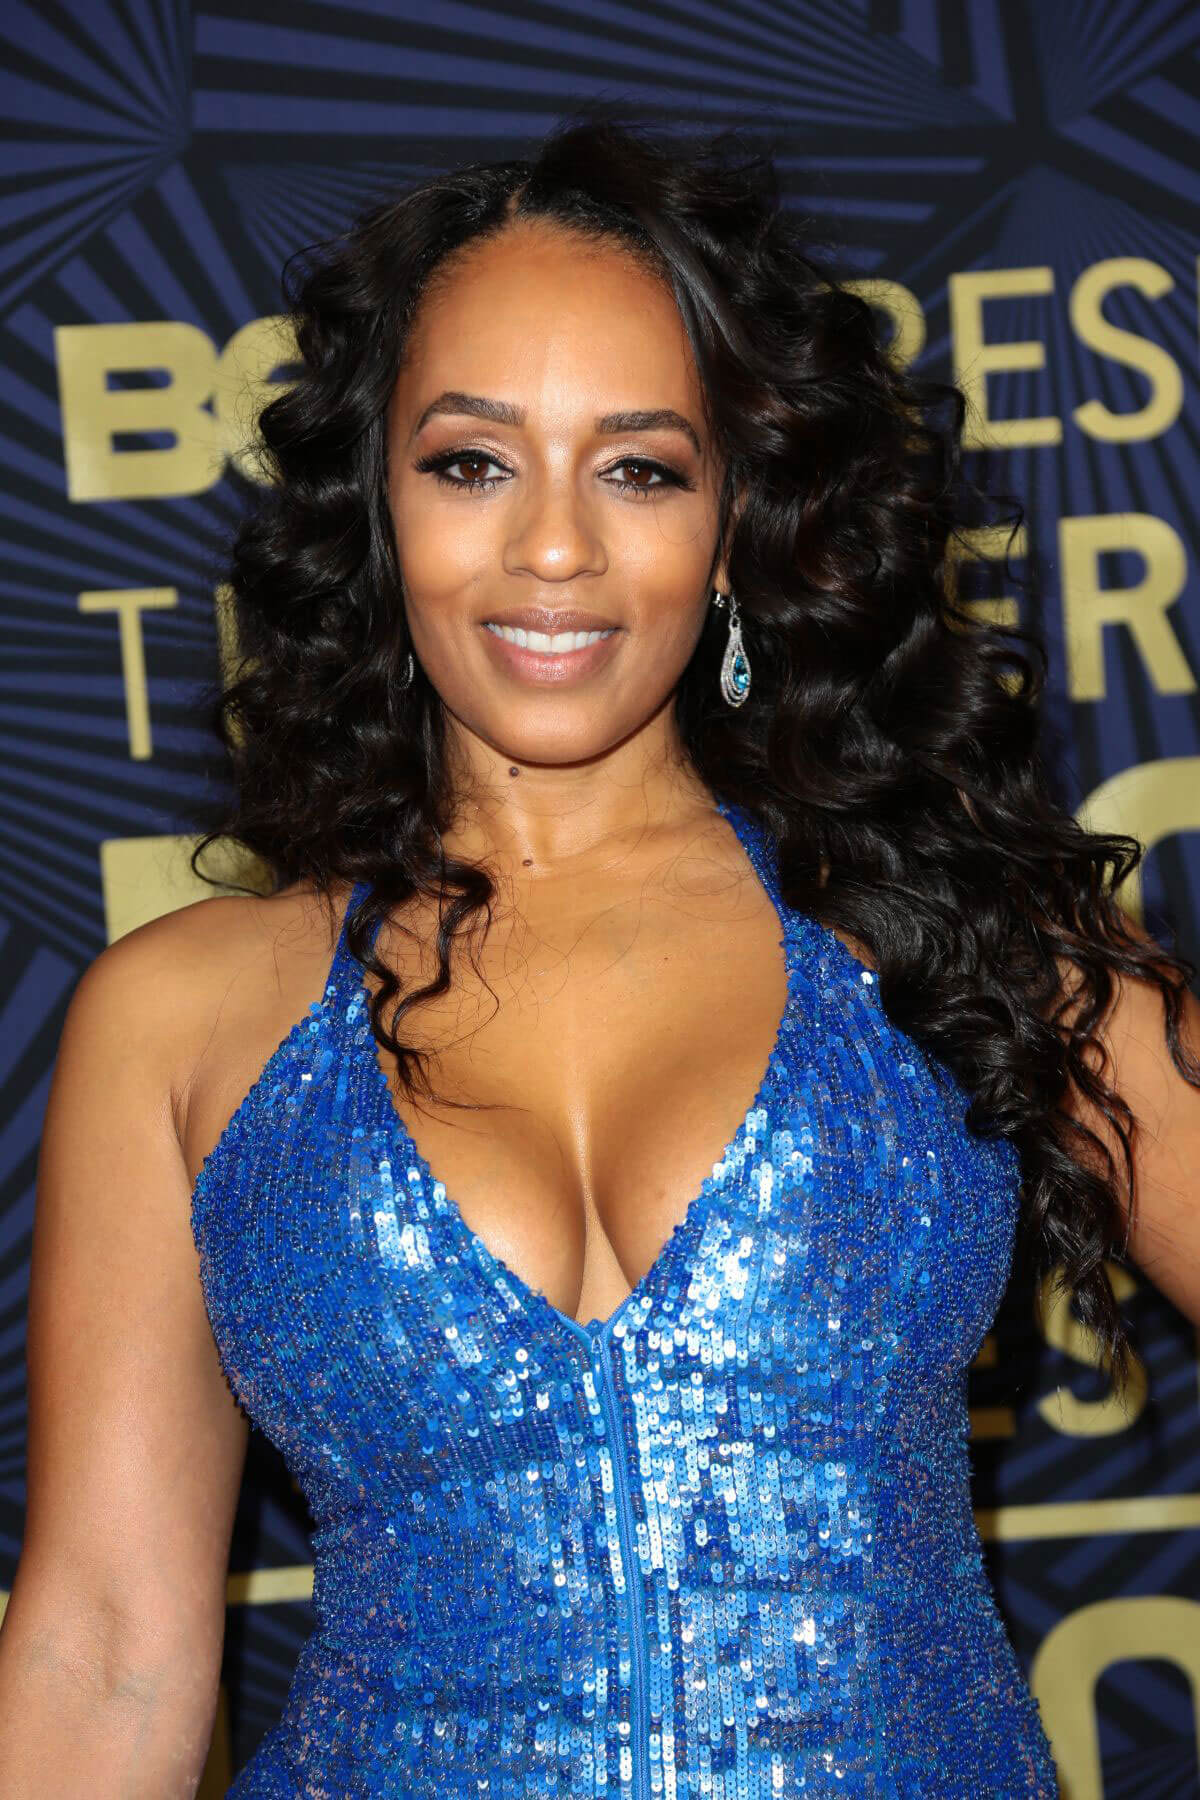 Cleavage Melyssa Ford naked (92 photo), Topless, Is a cute, Feet, braless 2015